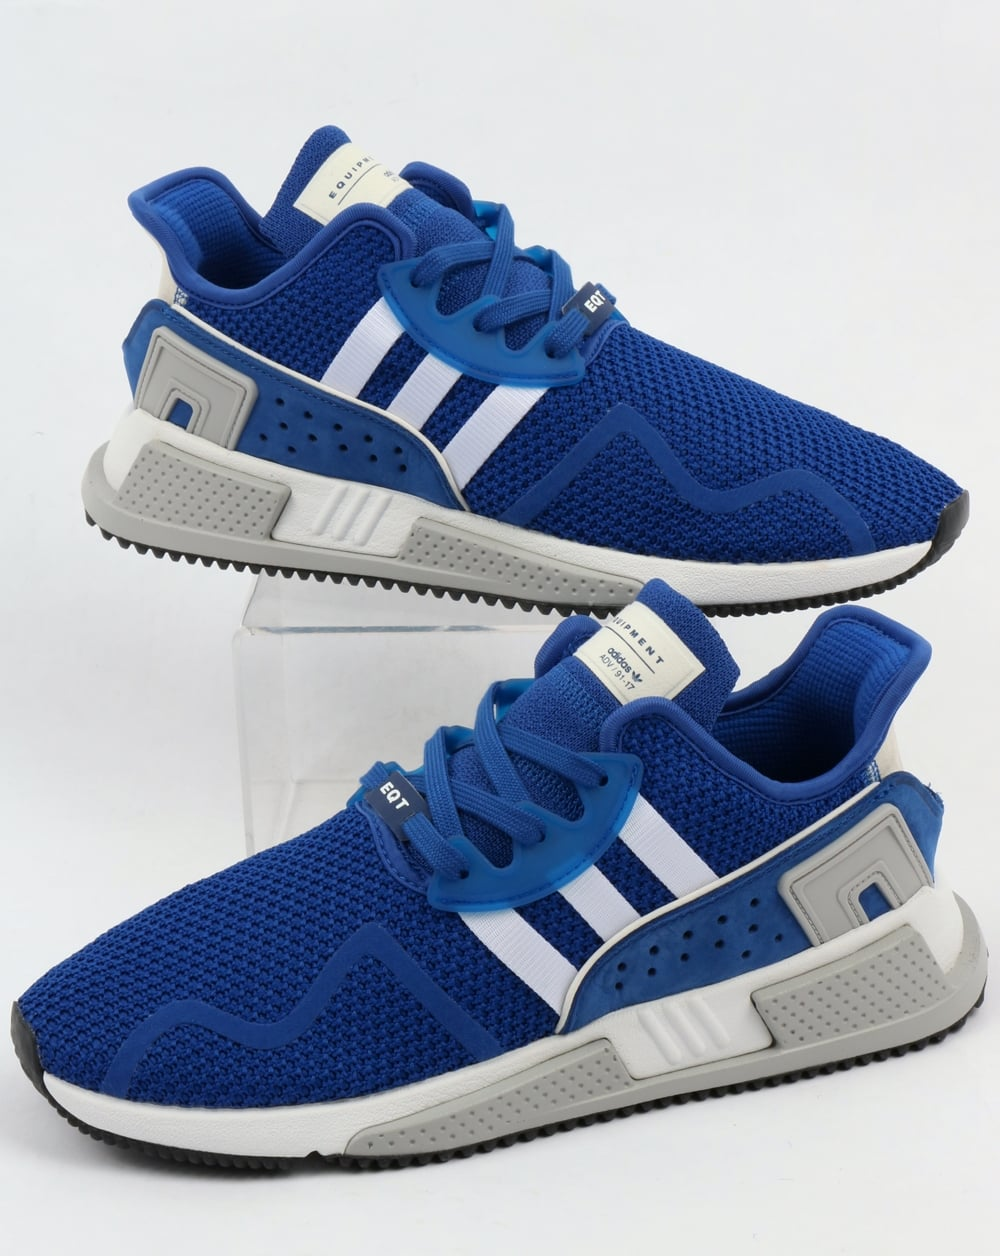 6a4b230819e4 adidas Trainers Adidas EQT Cushion Adv Trainers Royal White